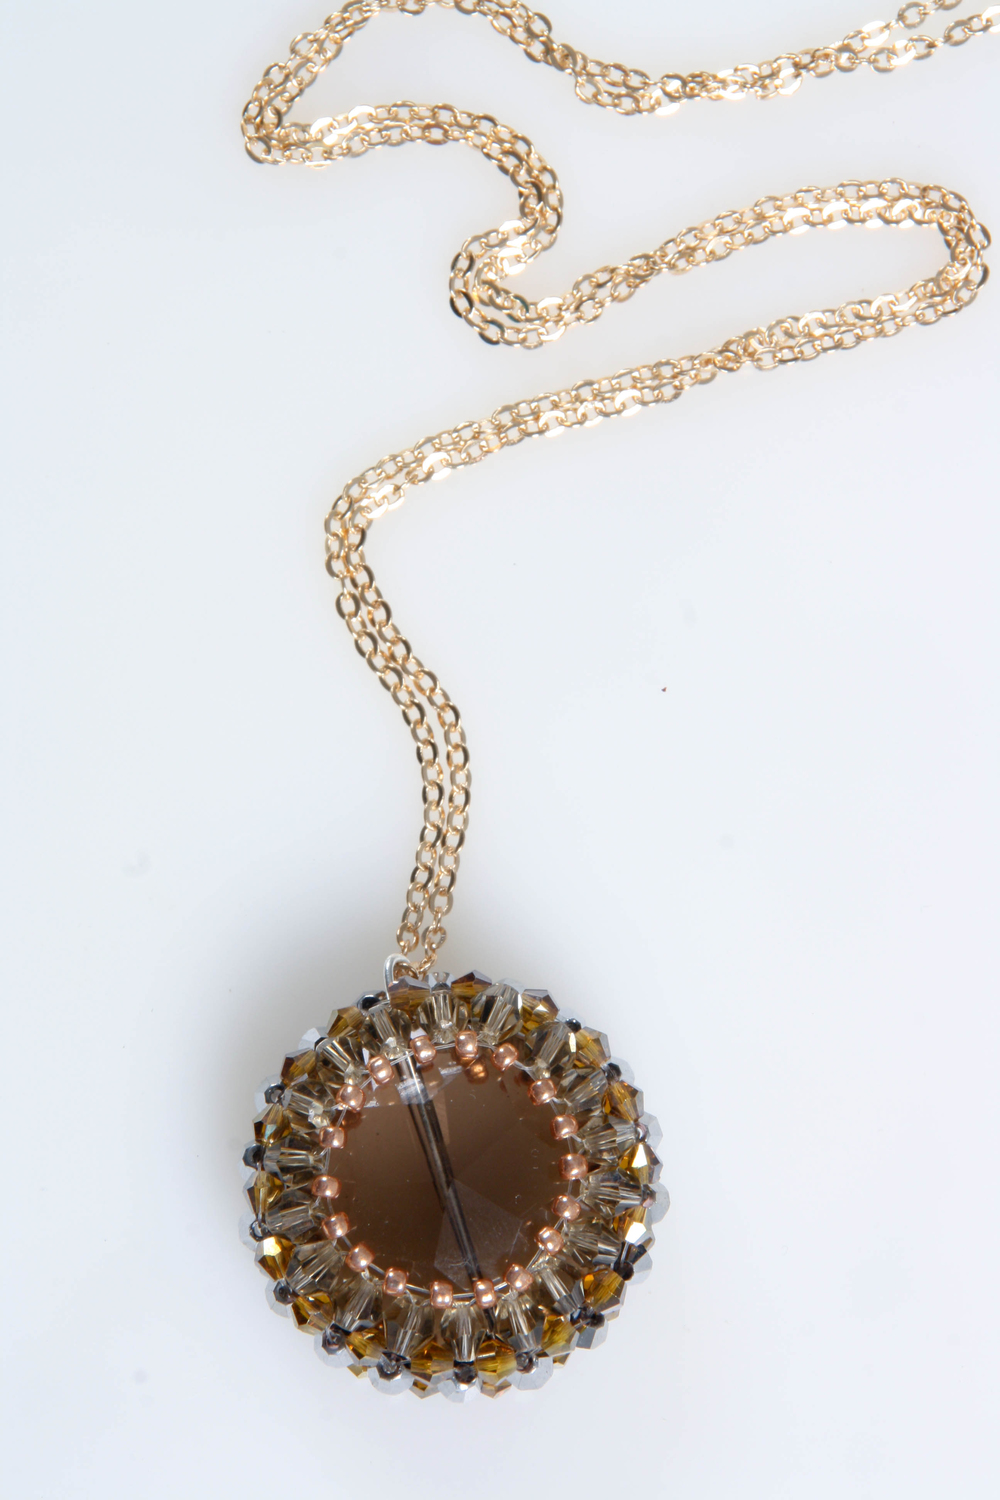 Smokey Quartz beaded pendant(8102).jpg